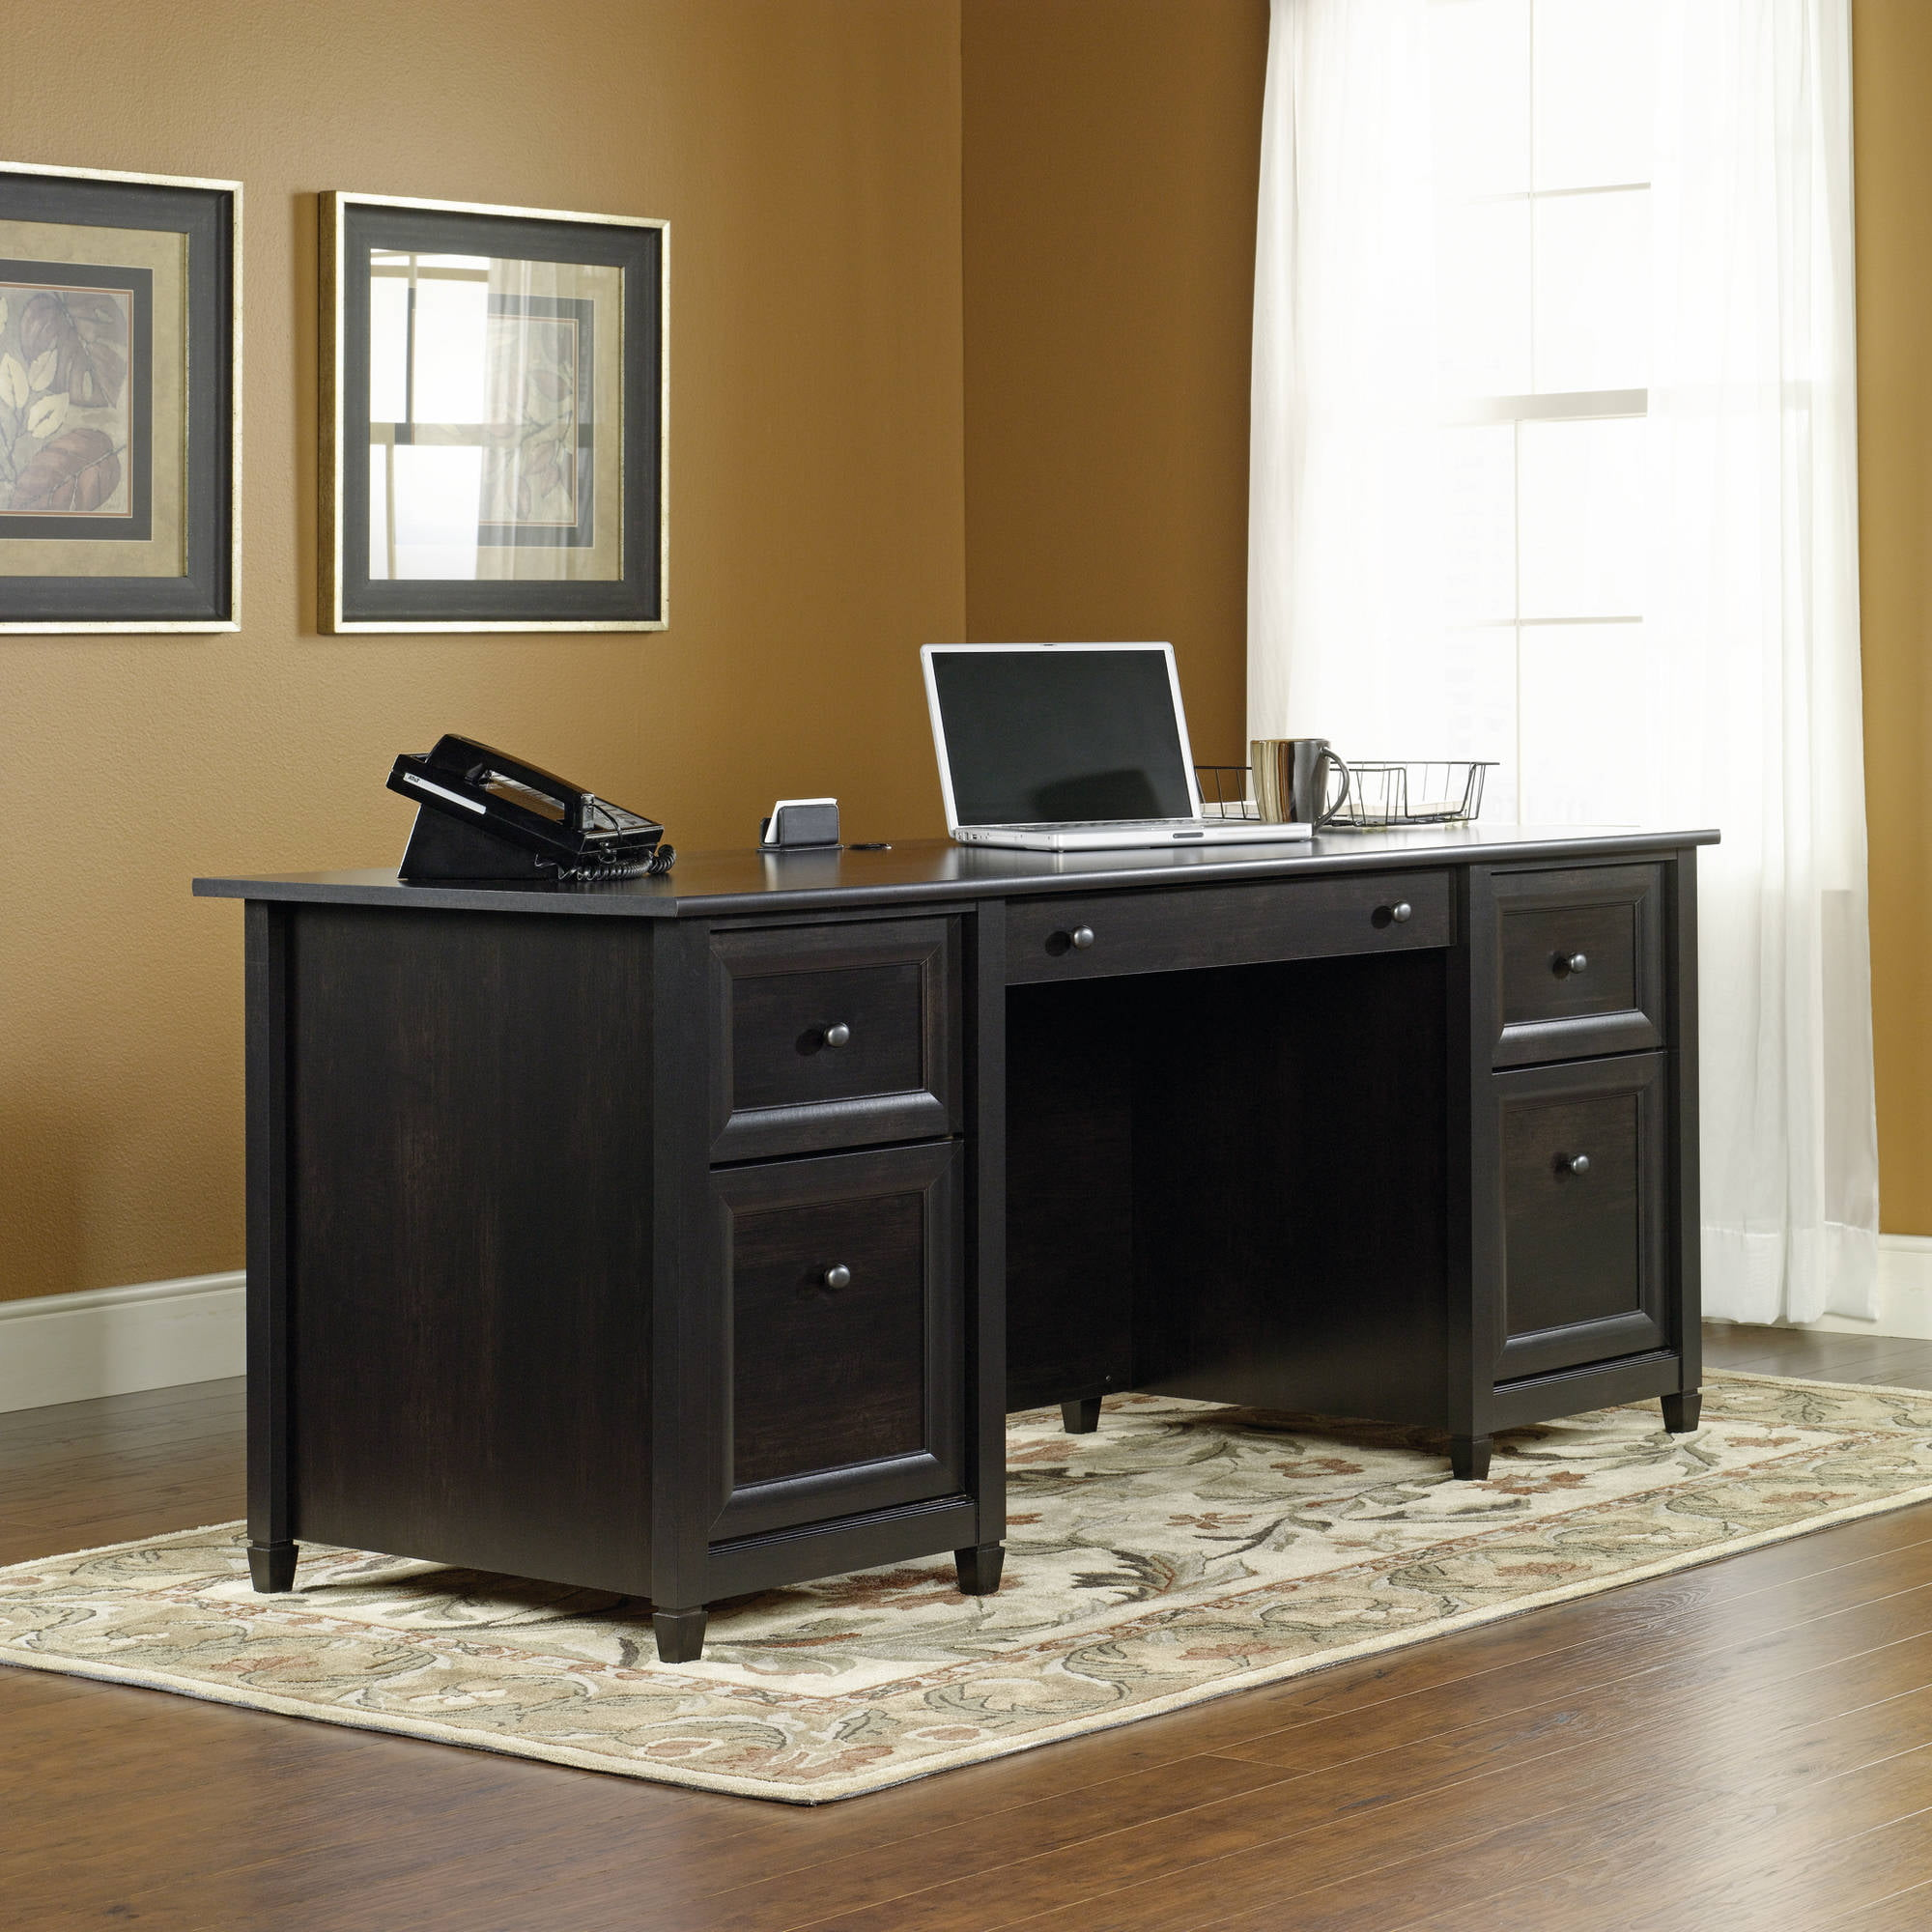 . Office Furniture   Every Day Low Prices   Walmart com